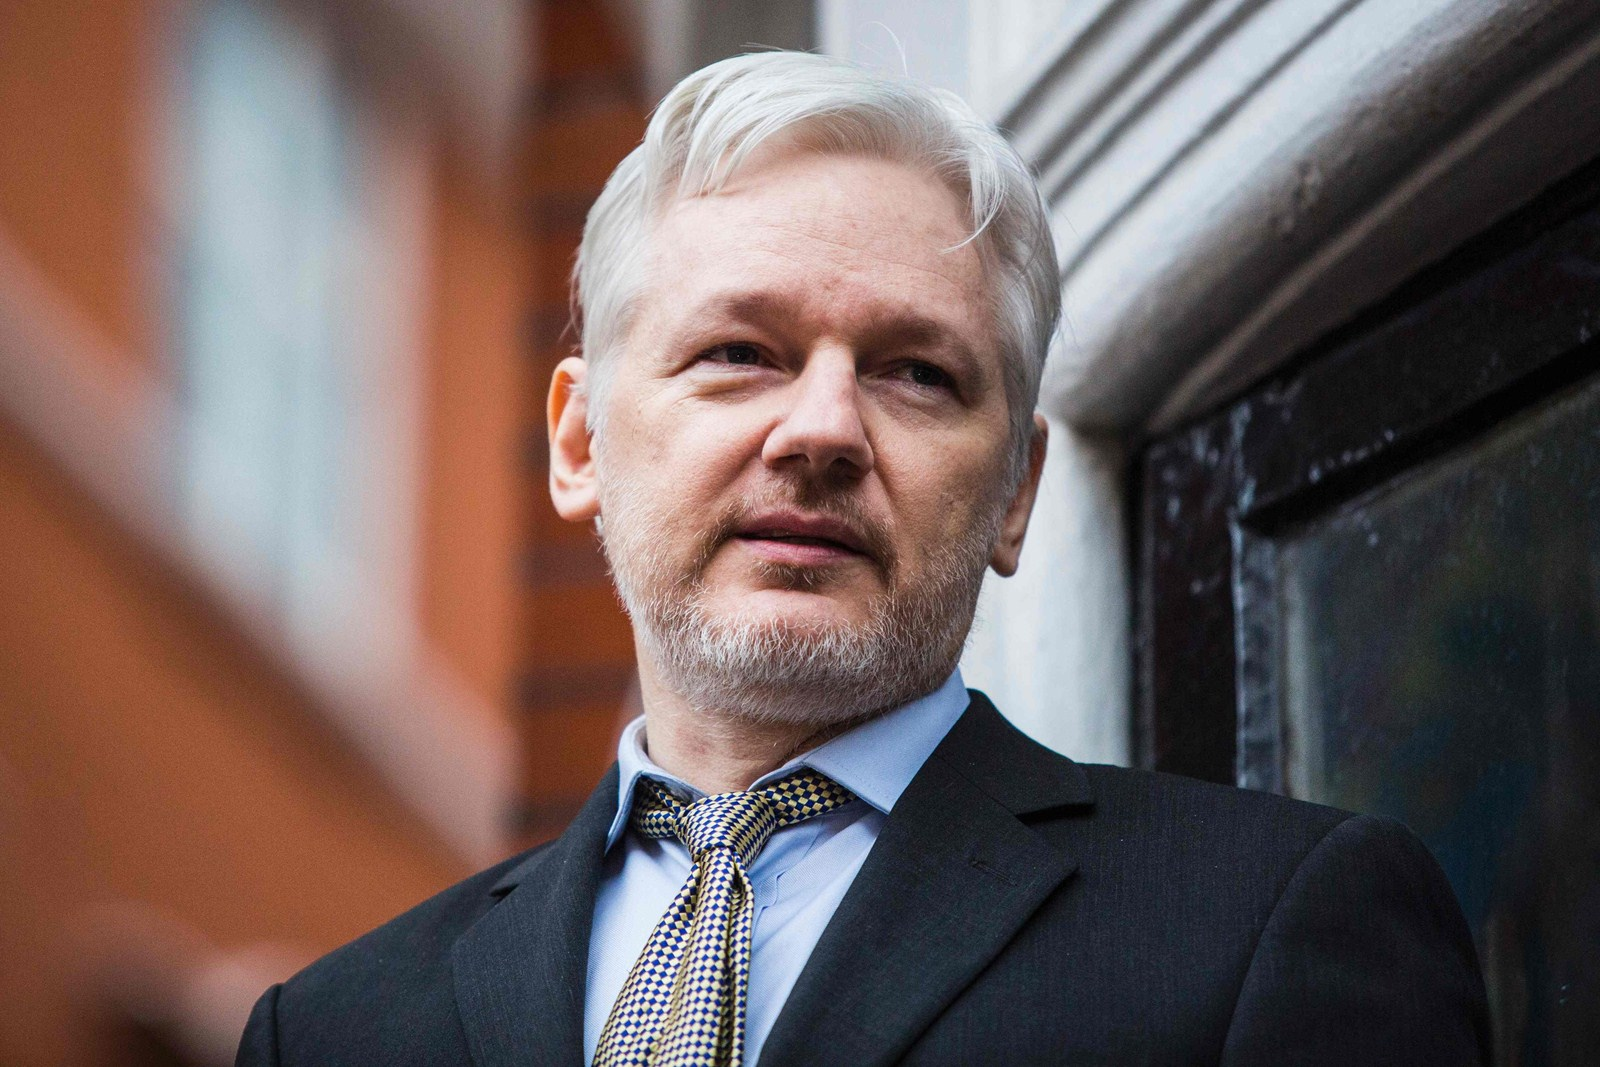 Yes The Media Downplay Wikileaks And Hillary Clinton But Assange Committed Espionage Porn North